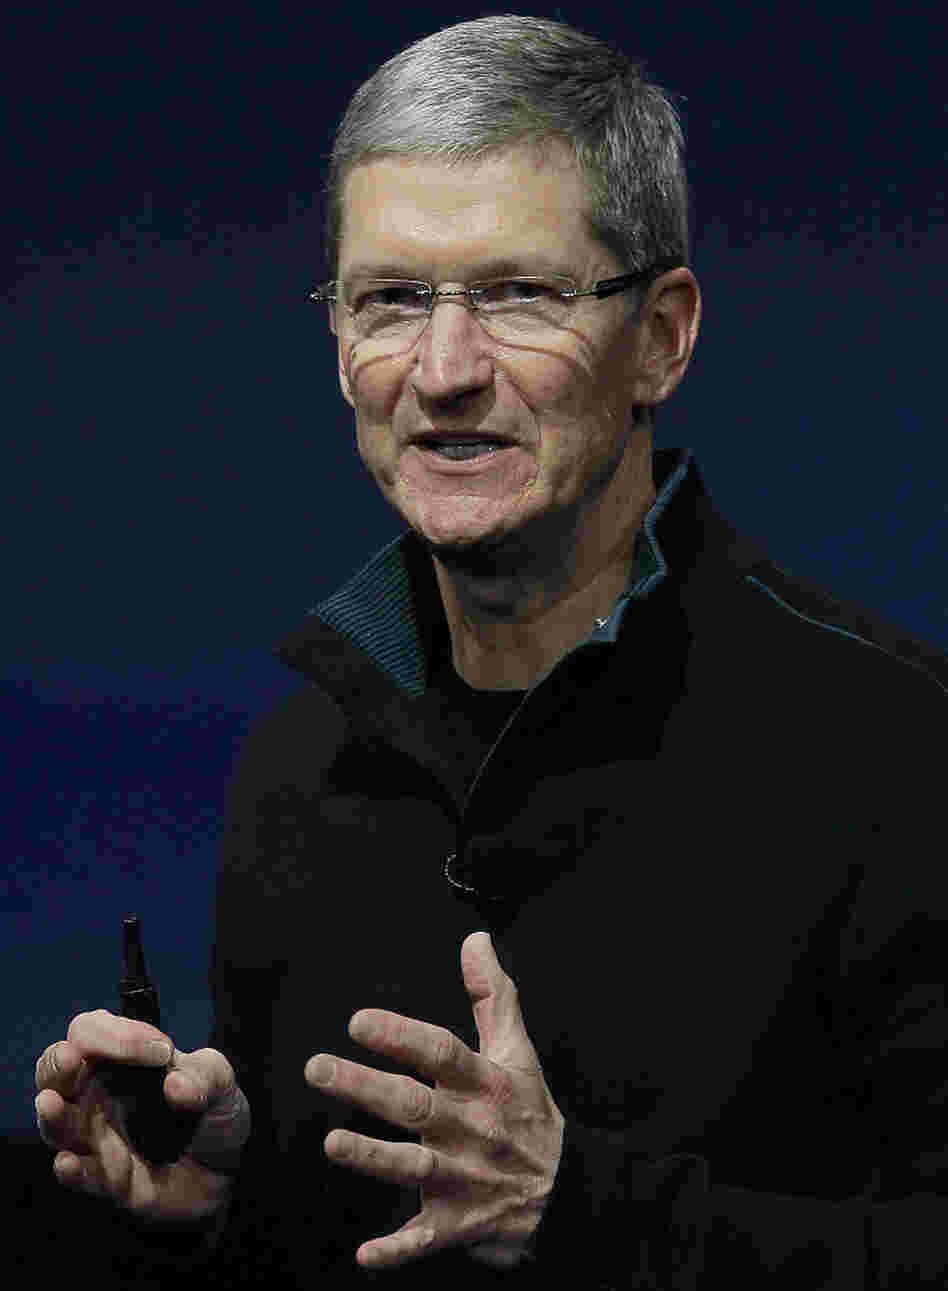 Tim Cook, who is Apple's new CEO. (Oct. 20, 2010, file photo.)